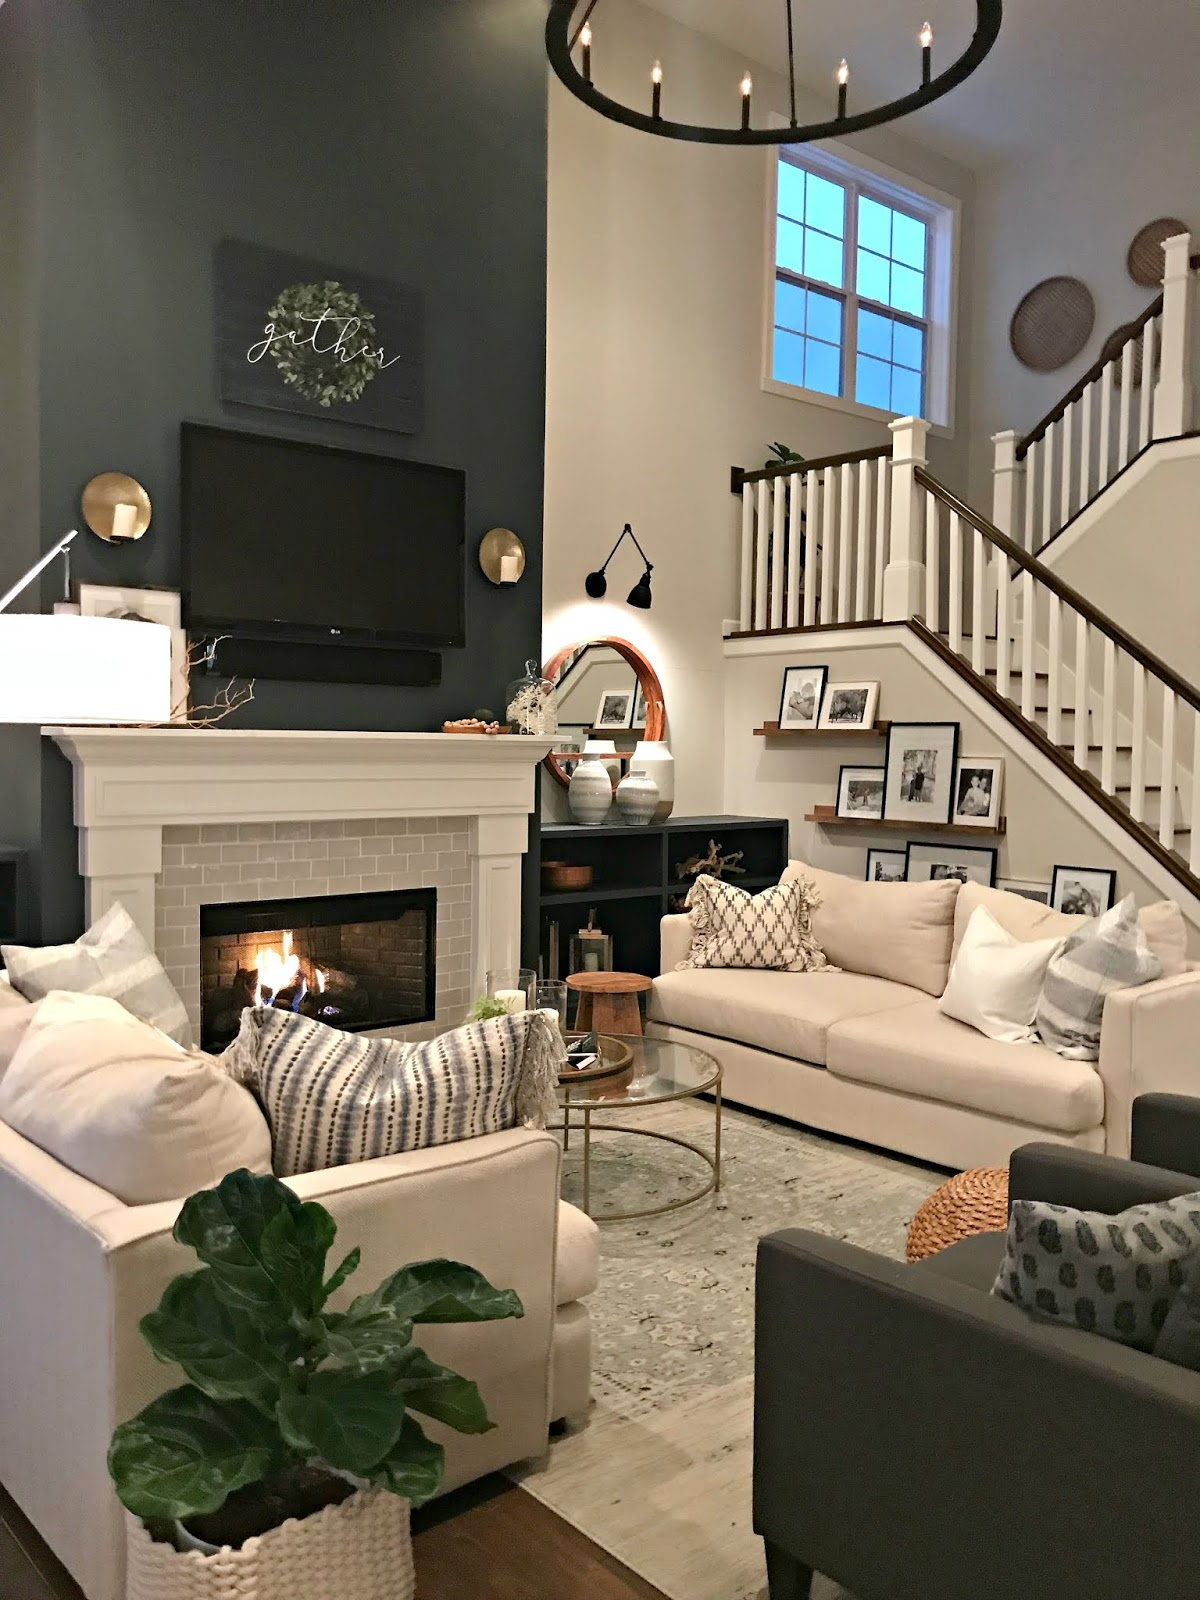 Tall fireplace and open stairs in family room